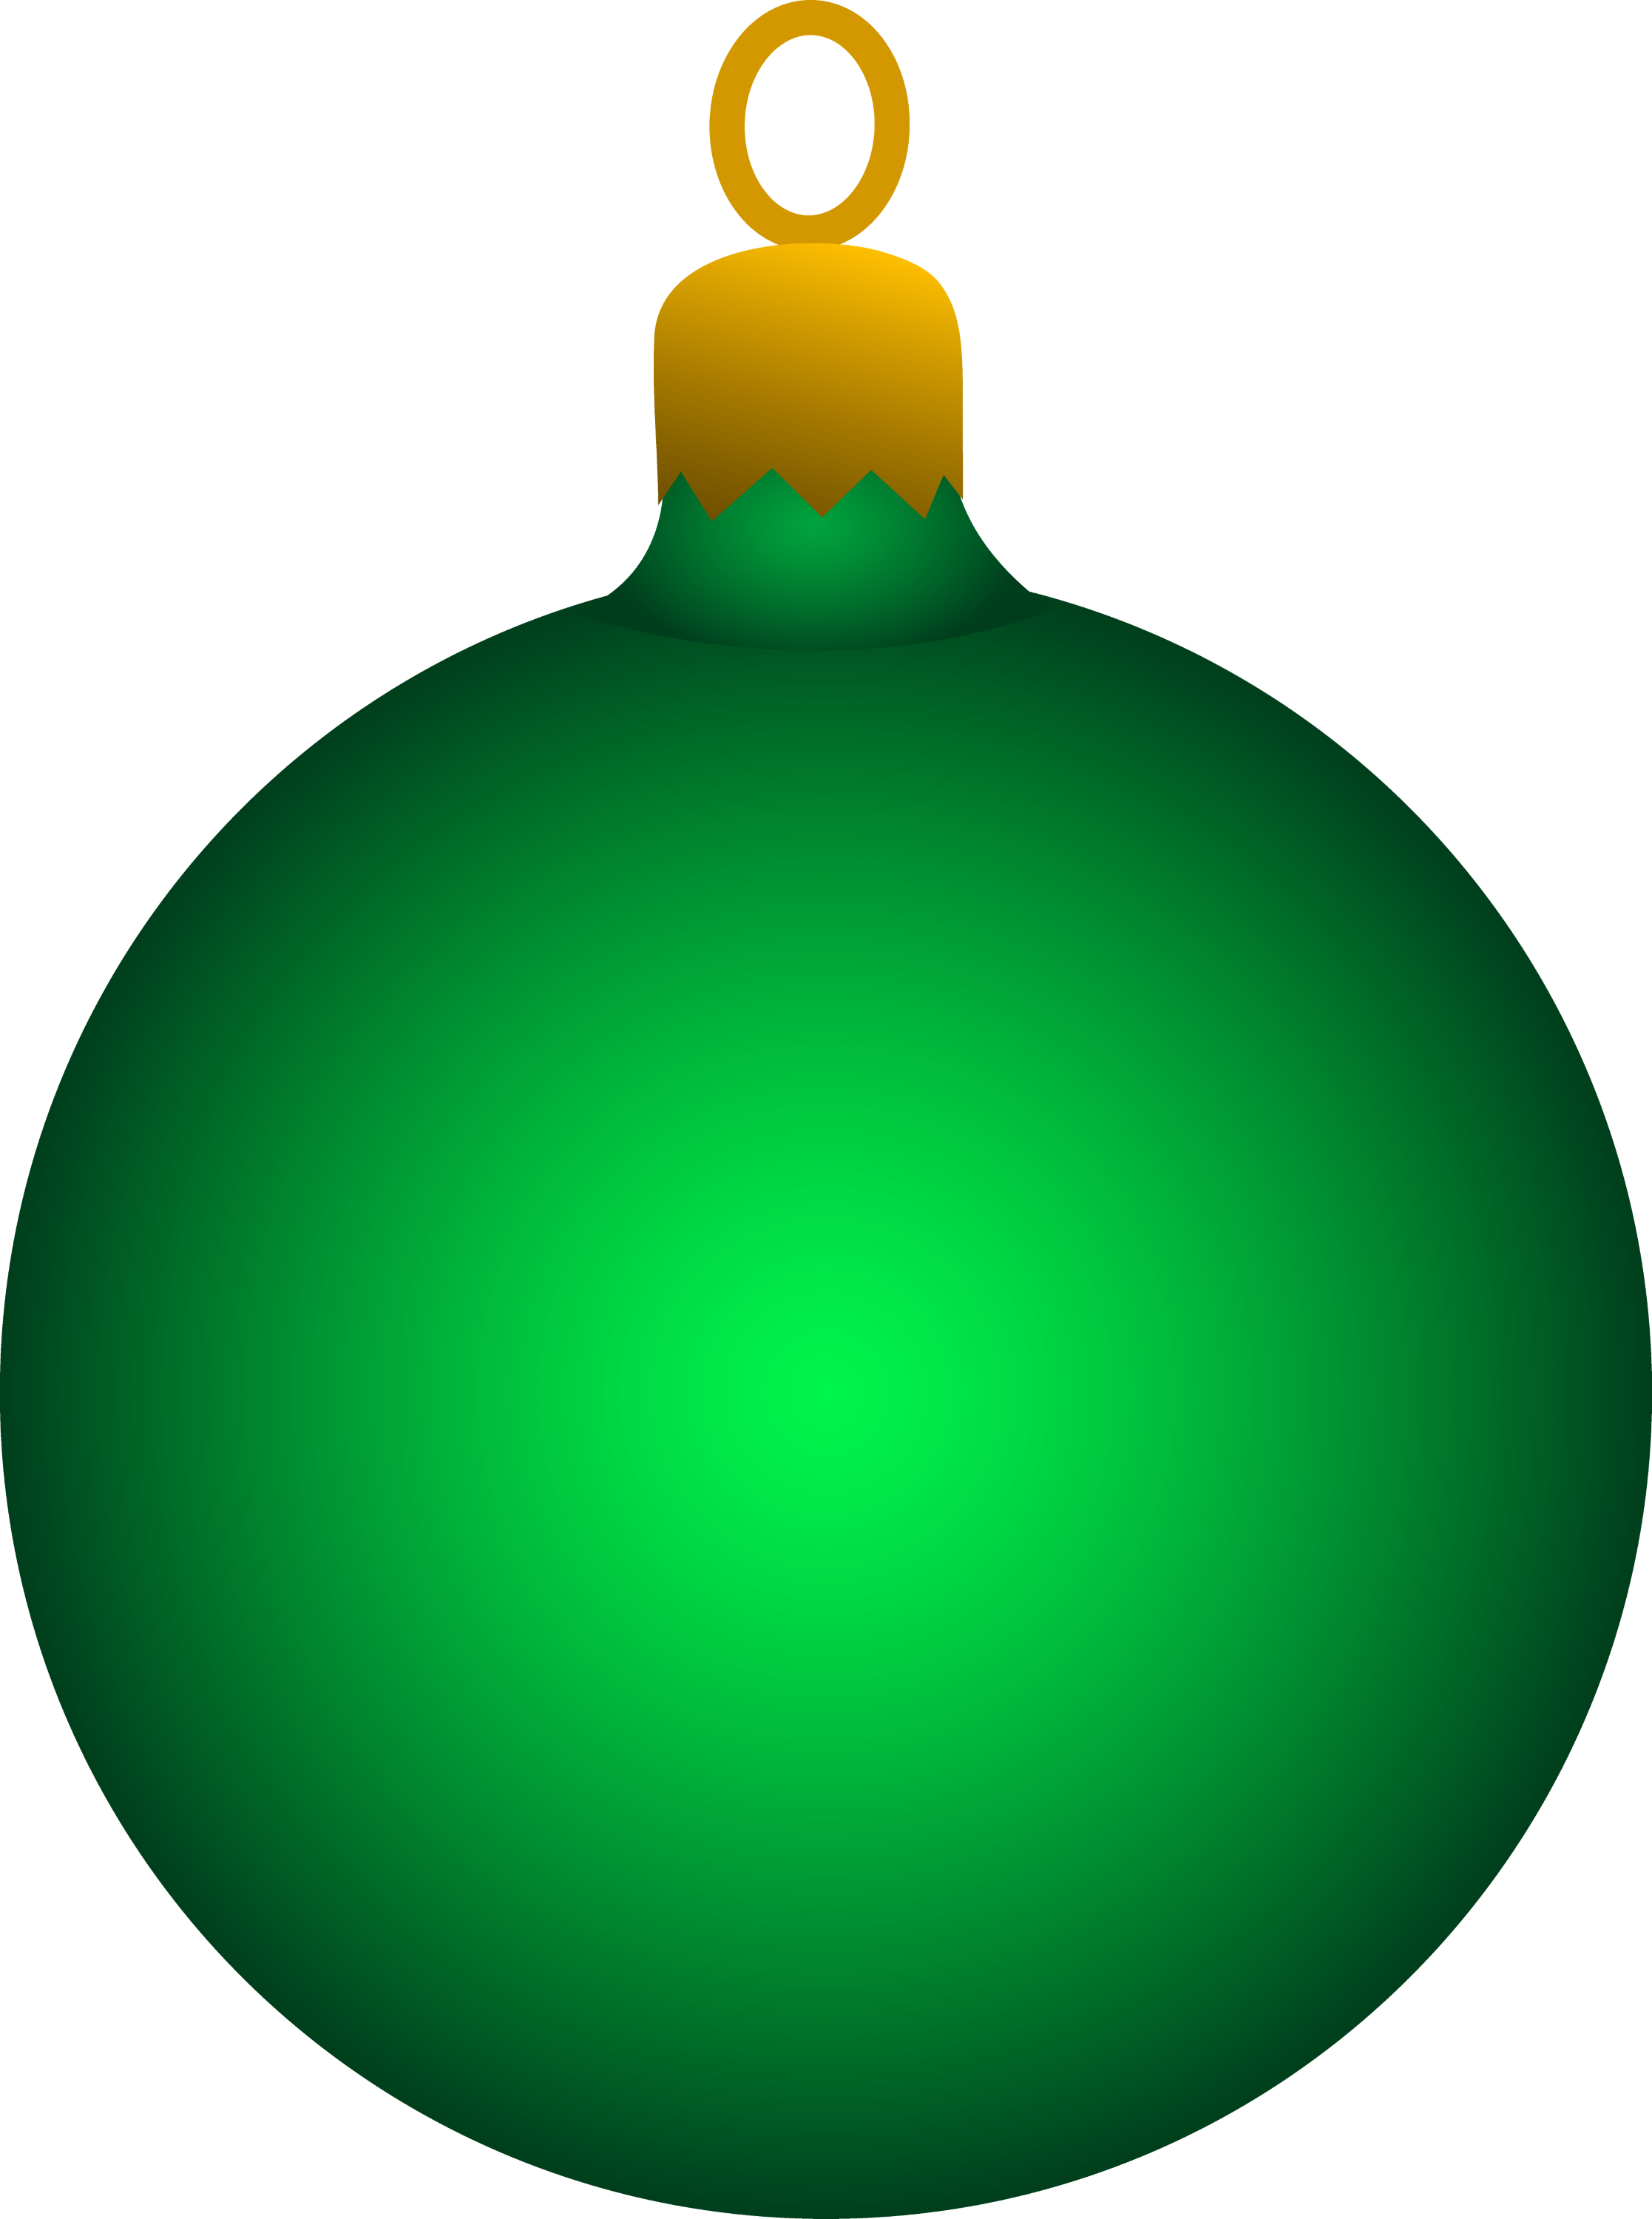 Green Christmas Tree Ornament - Free Clip Art